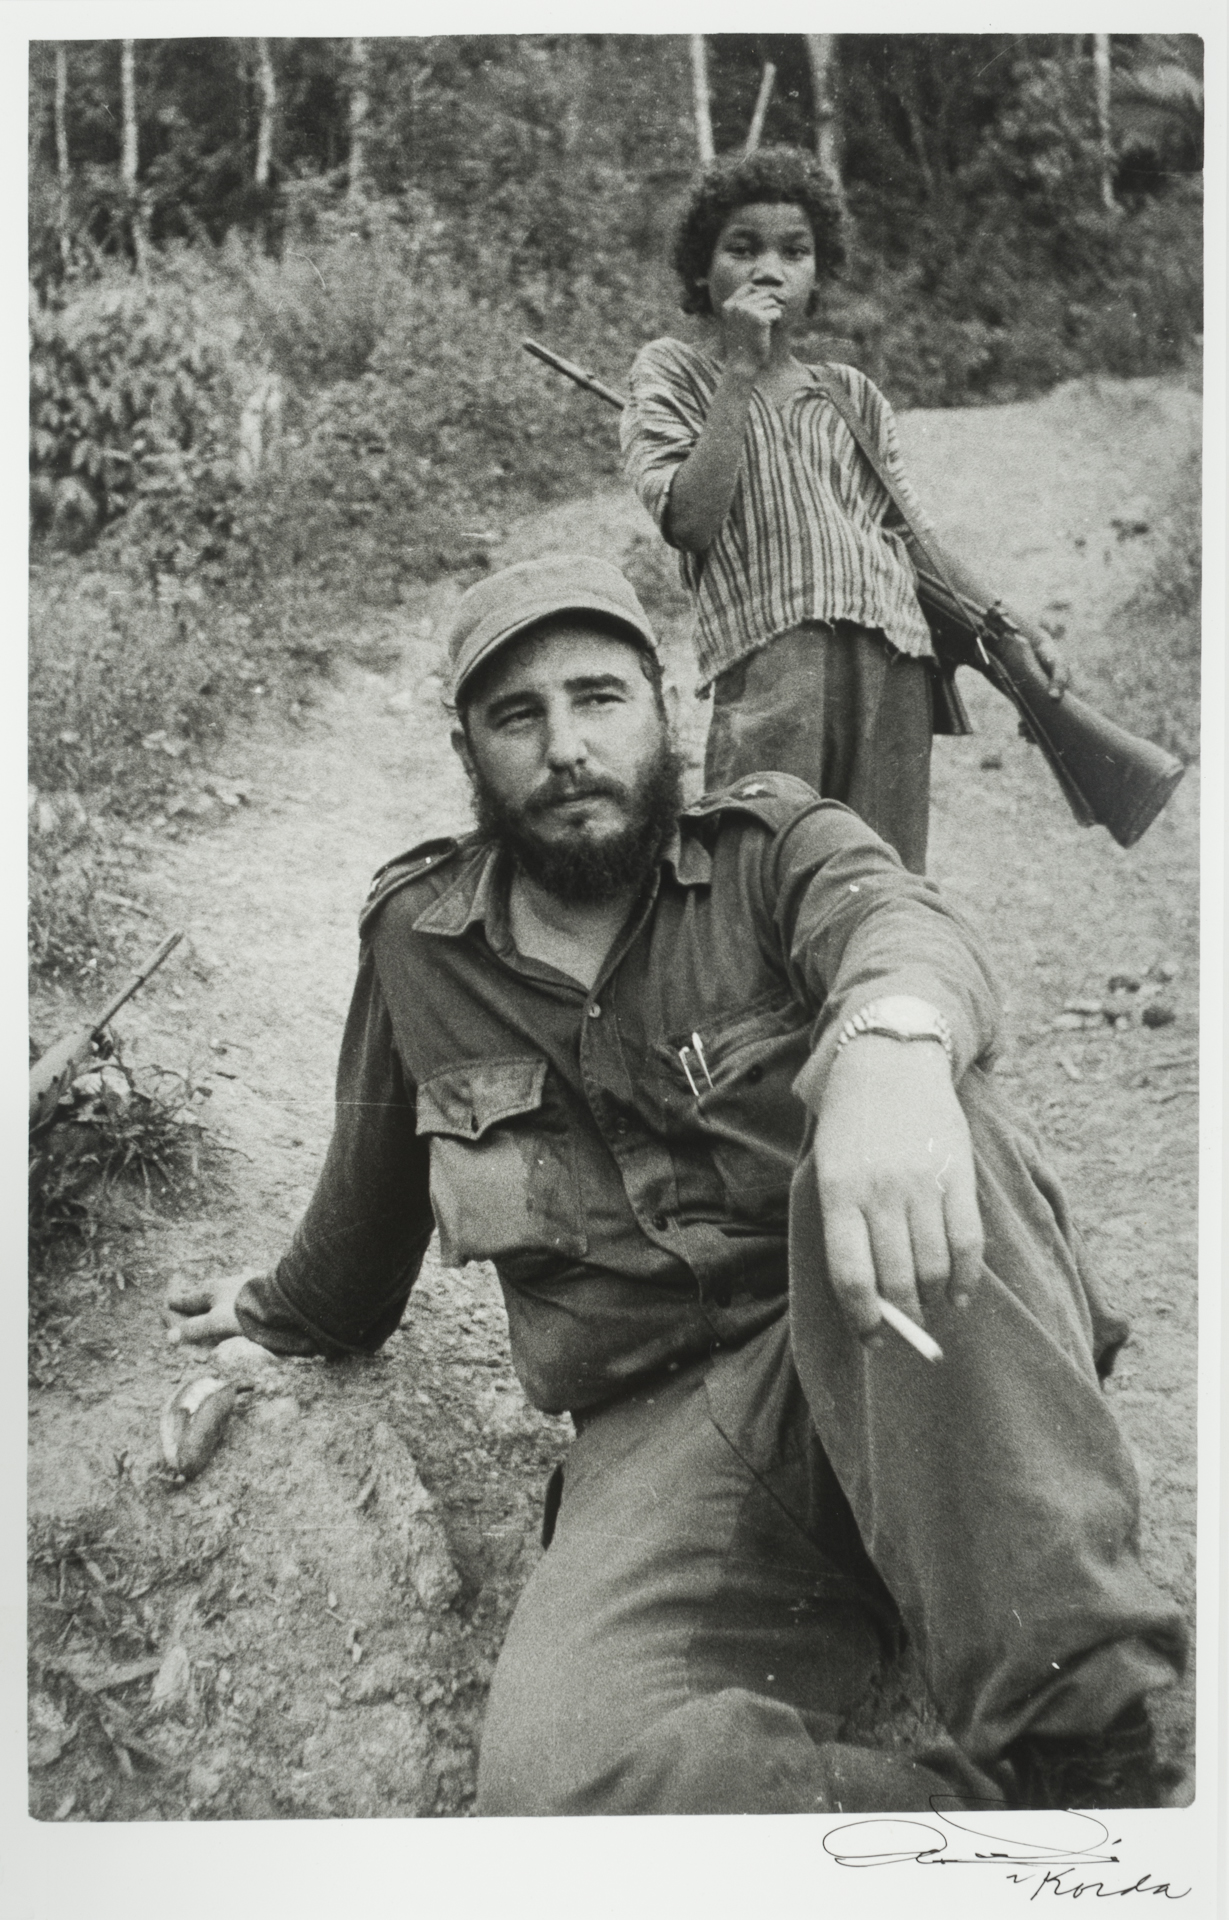 Fidel y Nino (Fidel with Child) 1960 by Korda